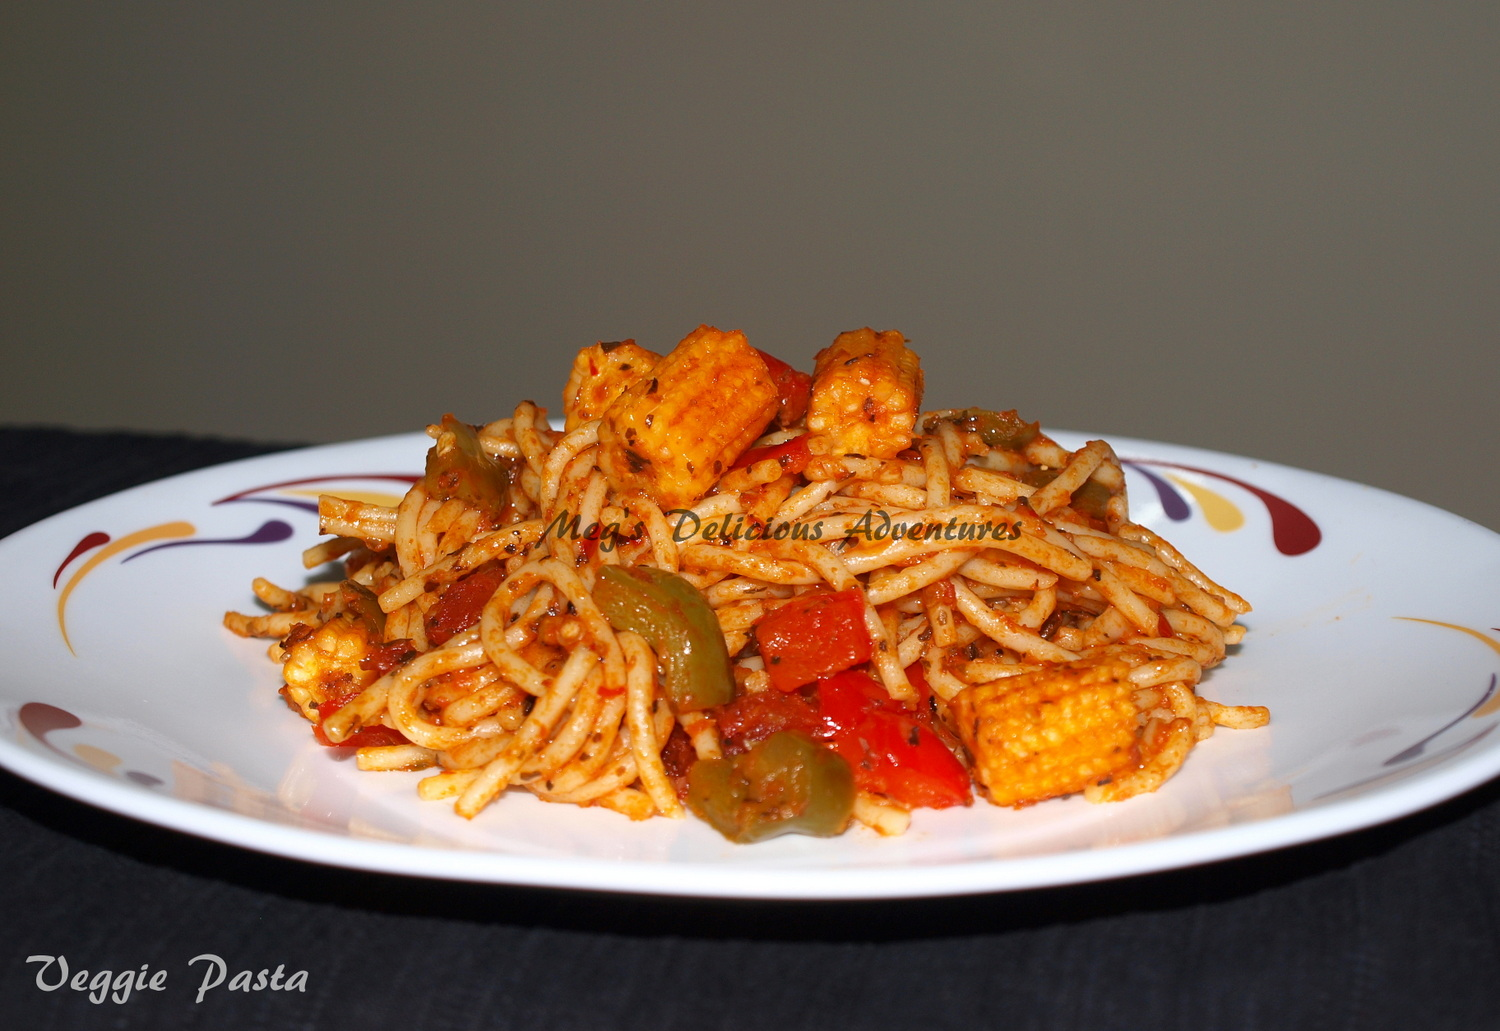 Veggie Pasta Spaghetti With Baby Corn Red And Green Pepper